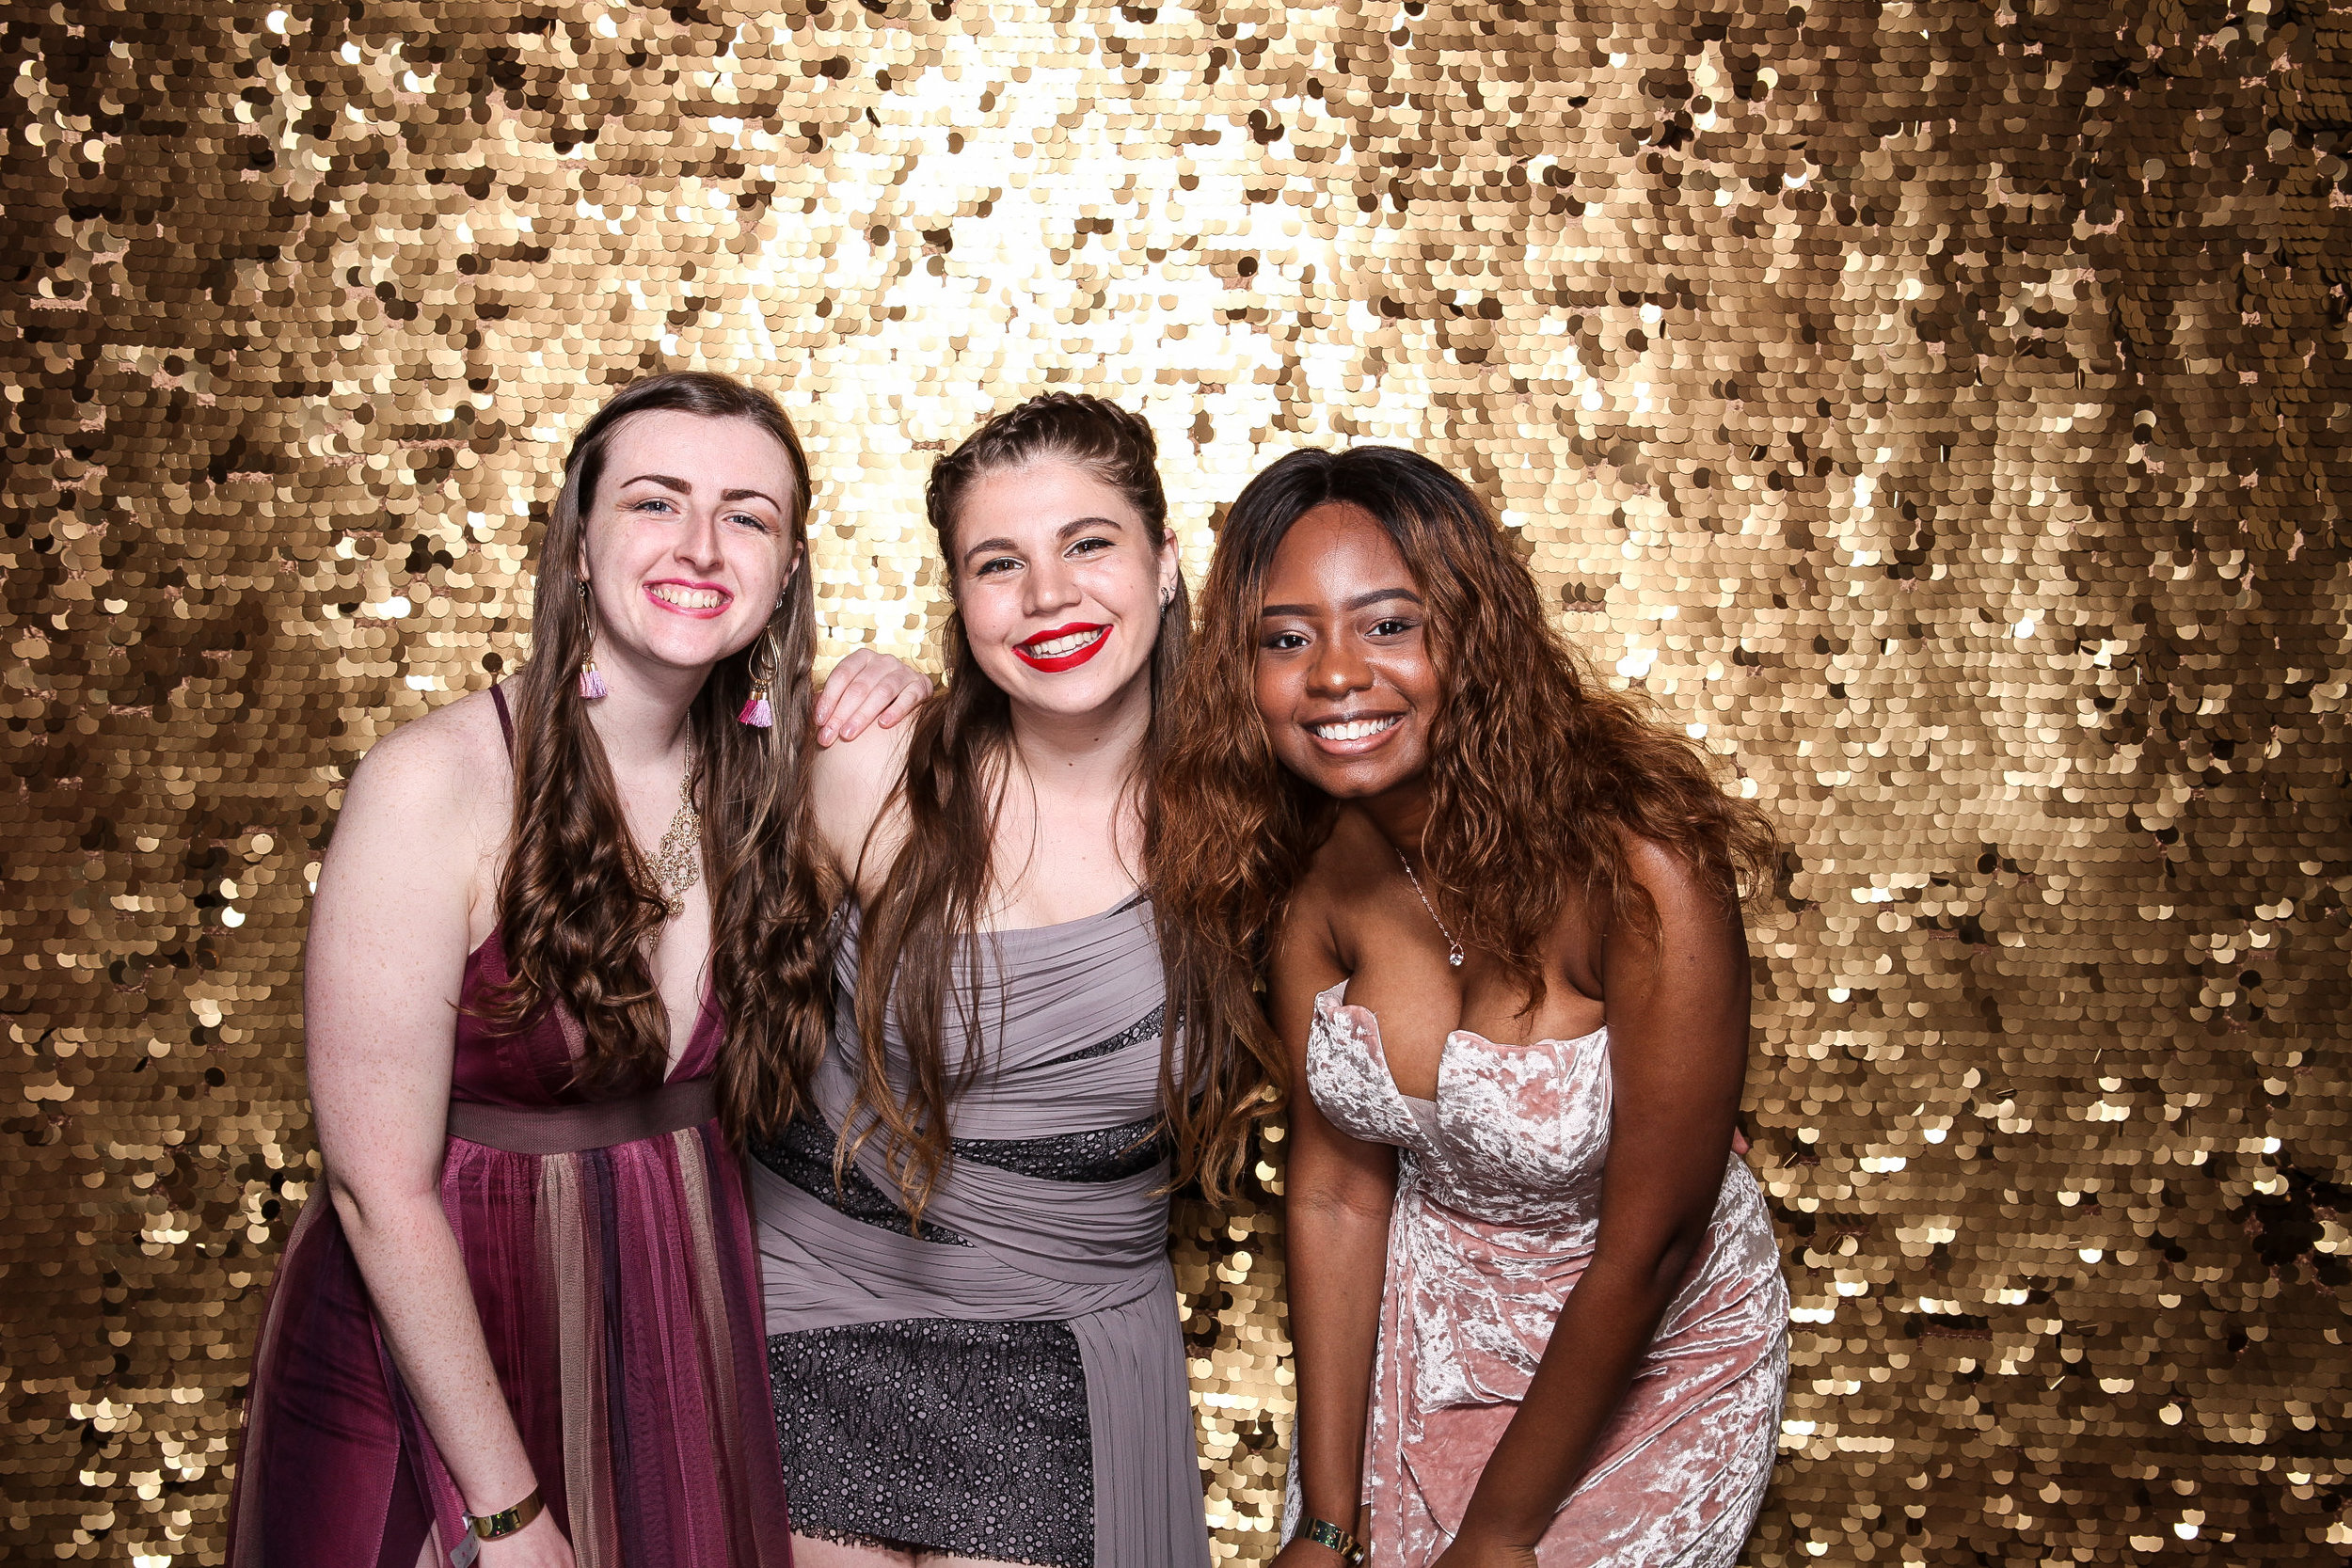 20190503_Adelphi_Senior_Formal-173.jpg